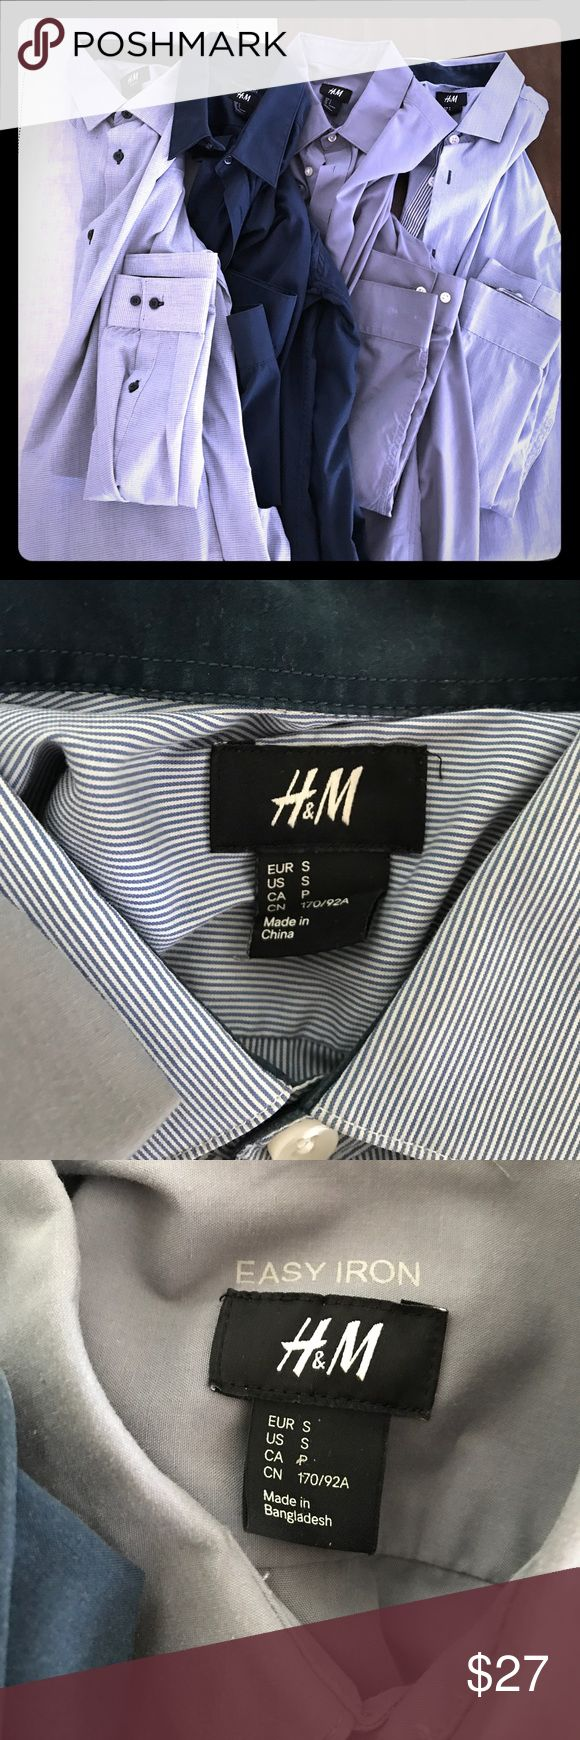 4 H&M Men's Small Dress shirts 4 H&M dress shirts. All Men's Small. Hardly worn because I like to eat a lot of hamburgers, and Small doesn't cut it anymore. No rips, holes, tears. All, pretty much, in mint condition and all have been dry cleaned.  Bid for all 4 at once. (Price is for all 4) H&M Shirts Dress Shirts